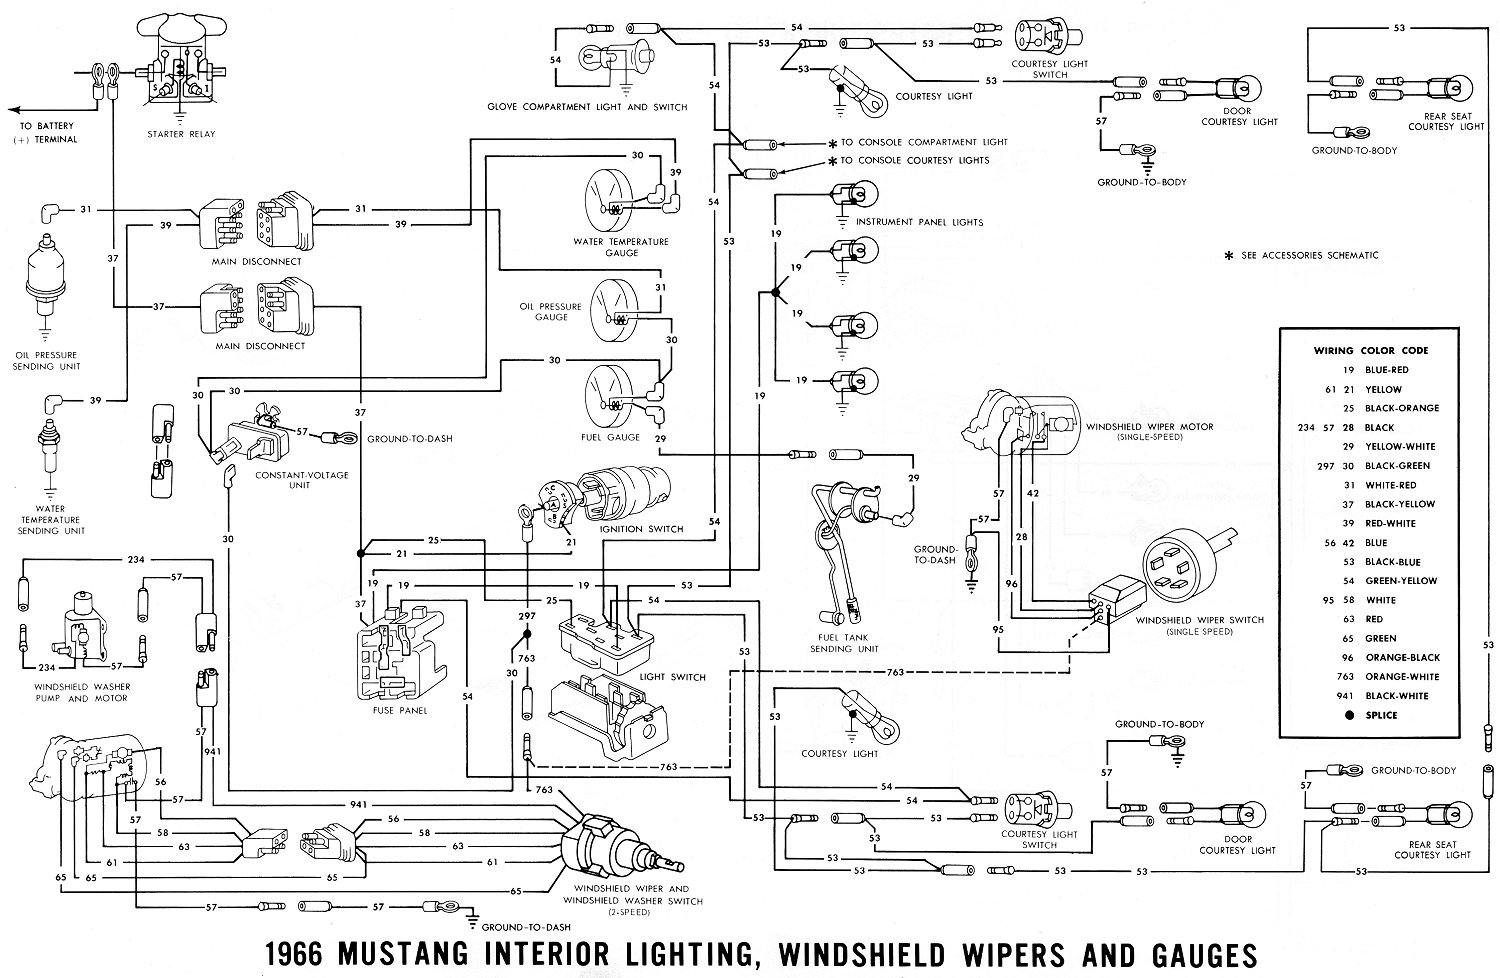 66inter1 1966 mustang wiring diagrams average joe restoration 68 Mustang Wiring Diagram at webbmarketing.co